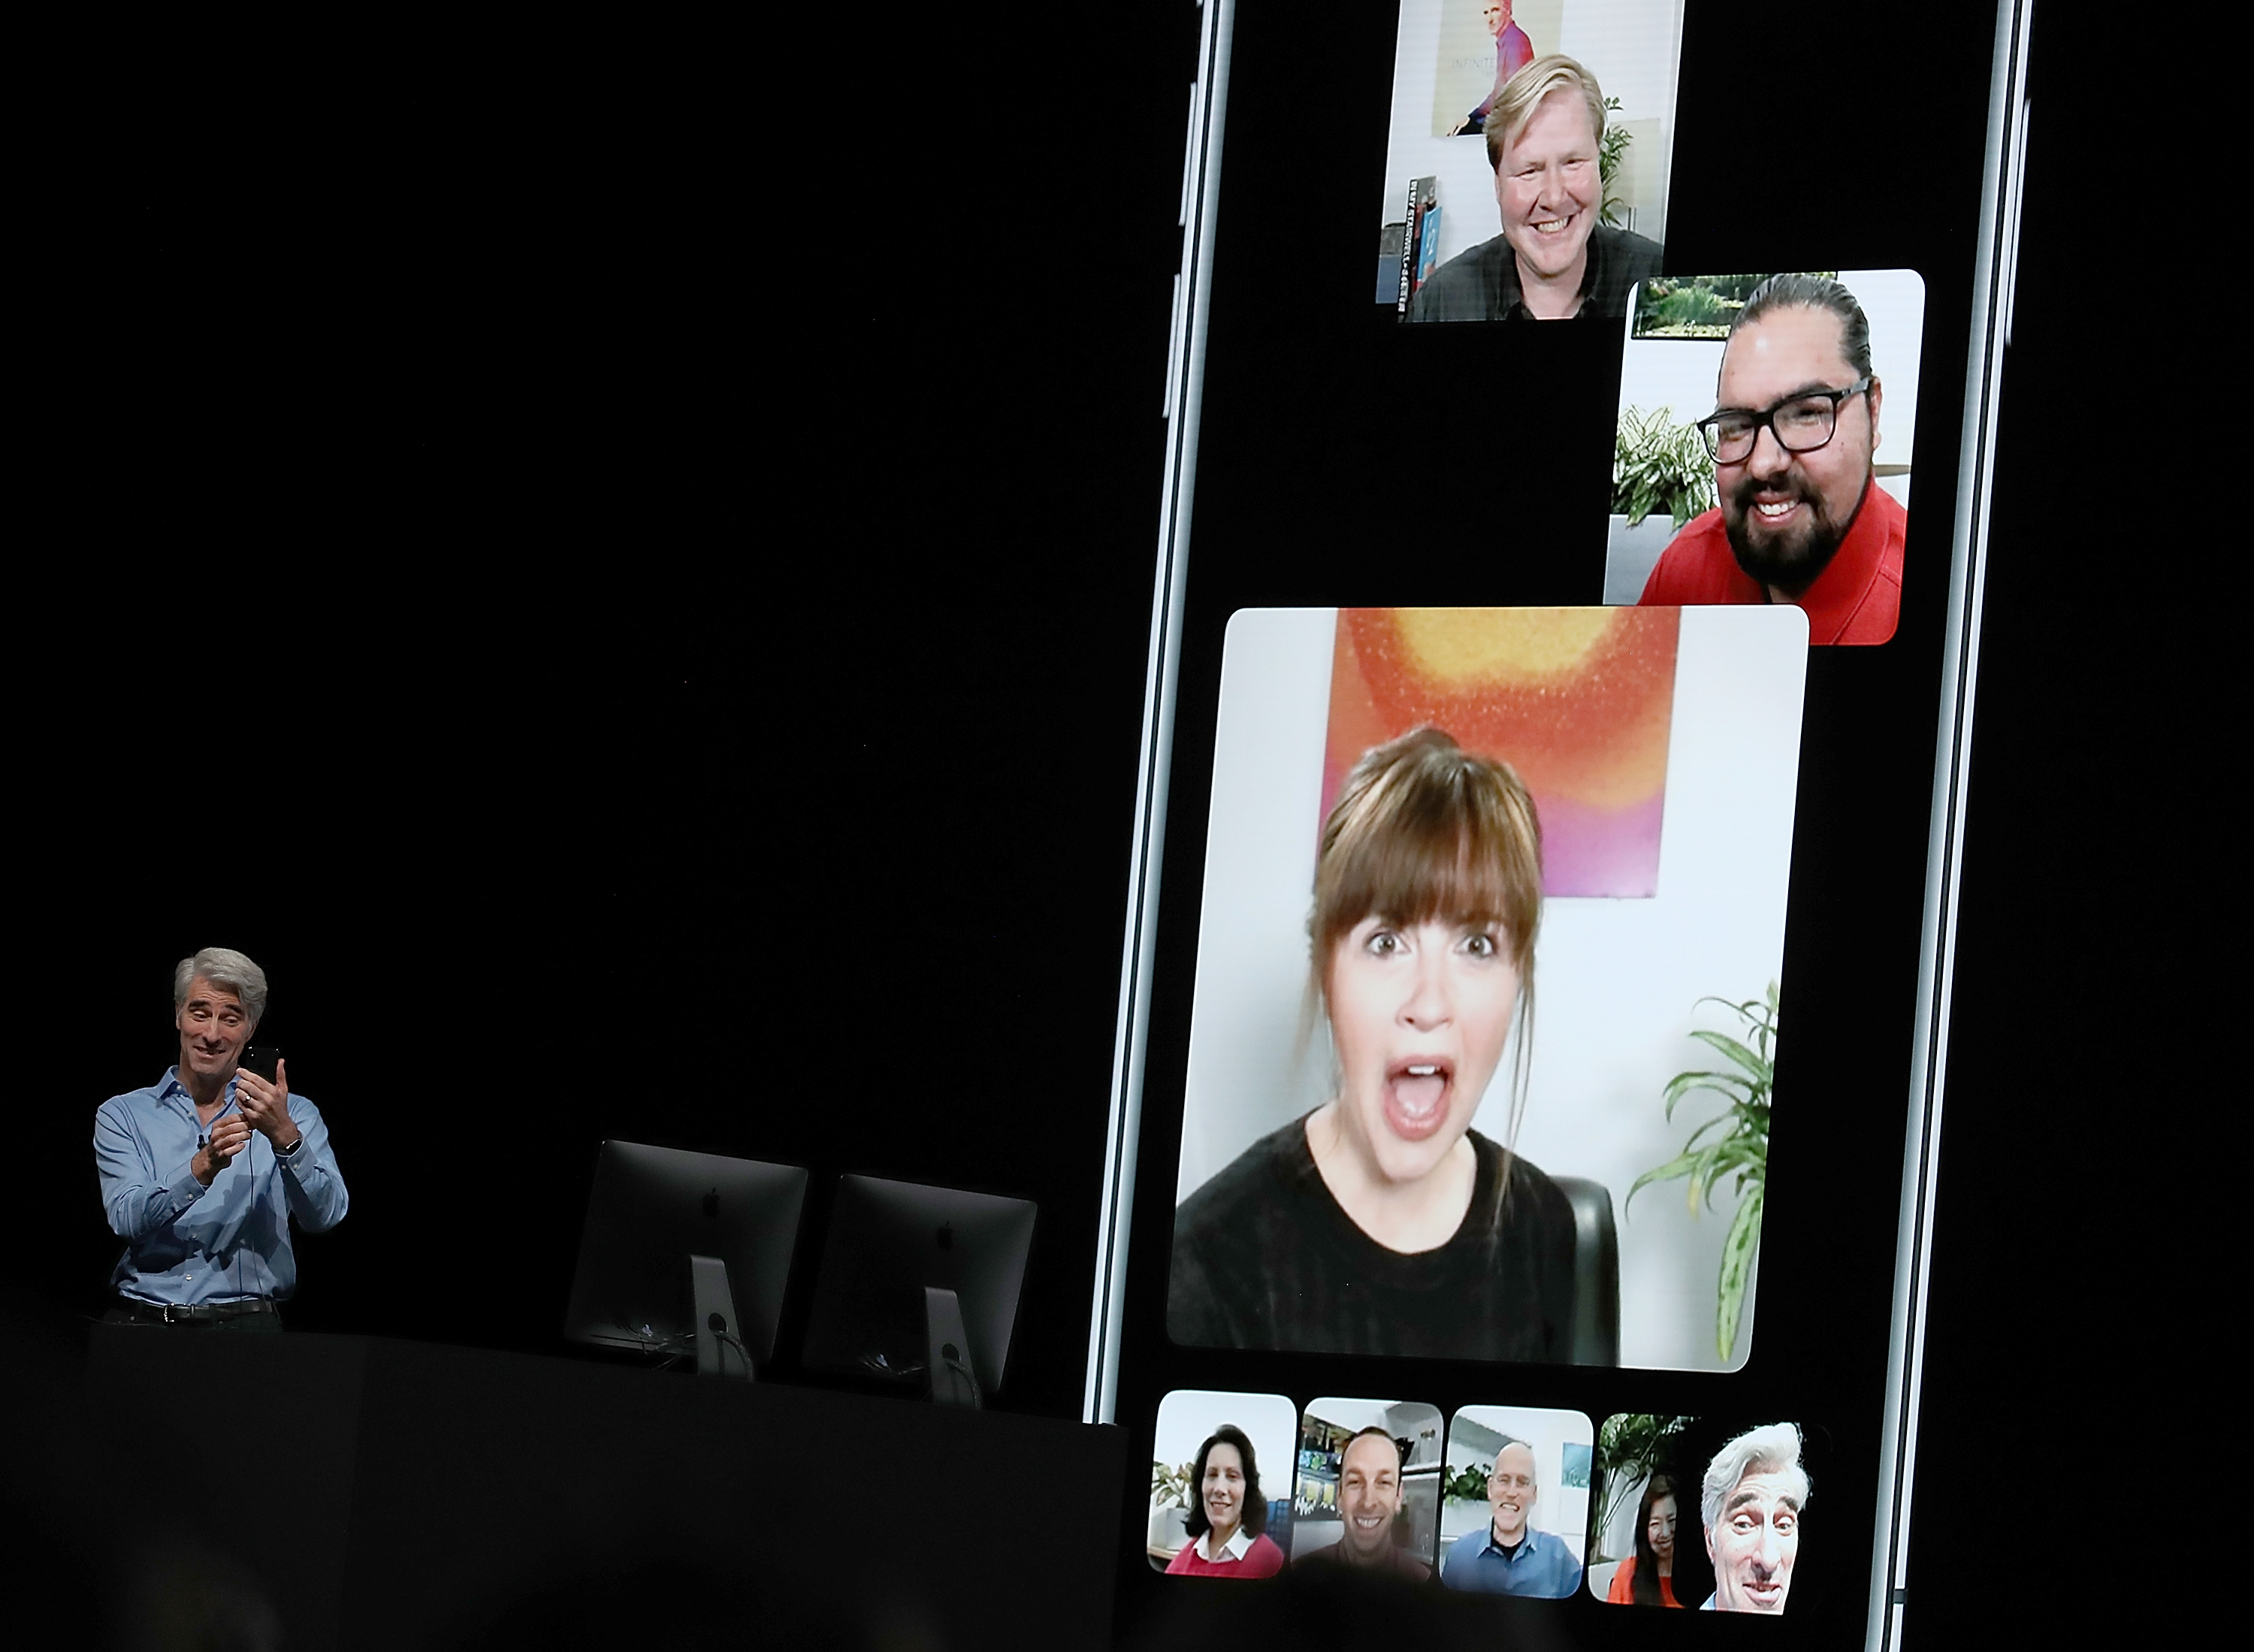 Apple delays the debut of Group FaceTime for video calls.